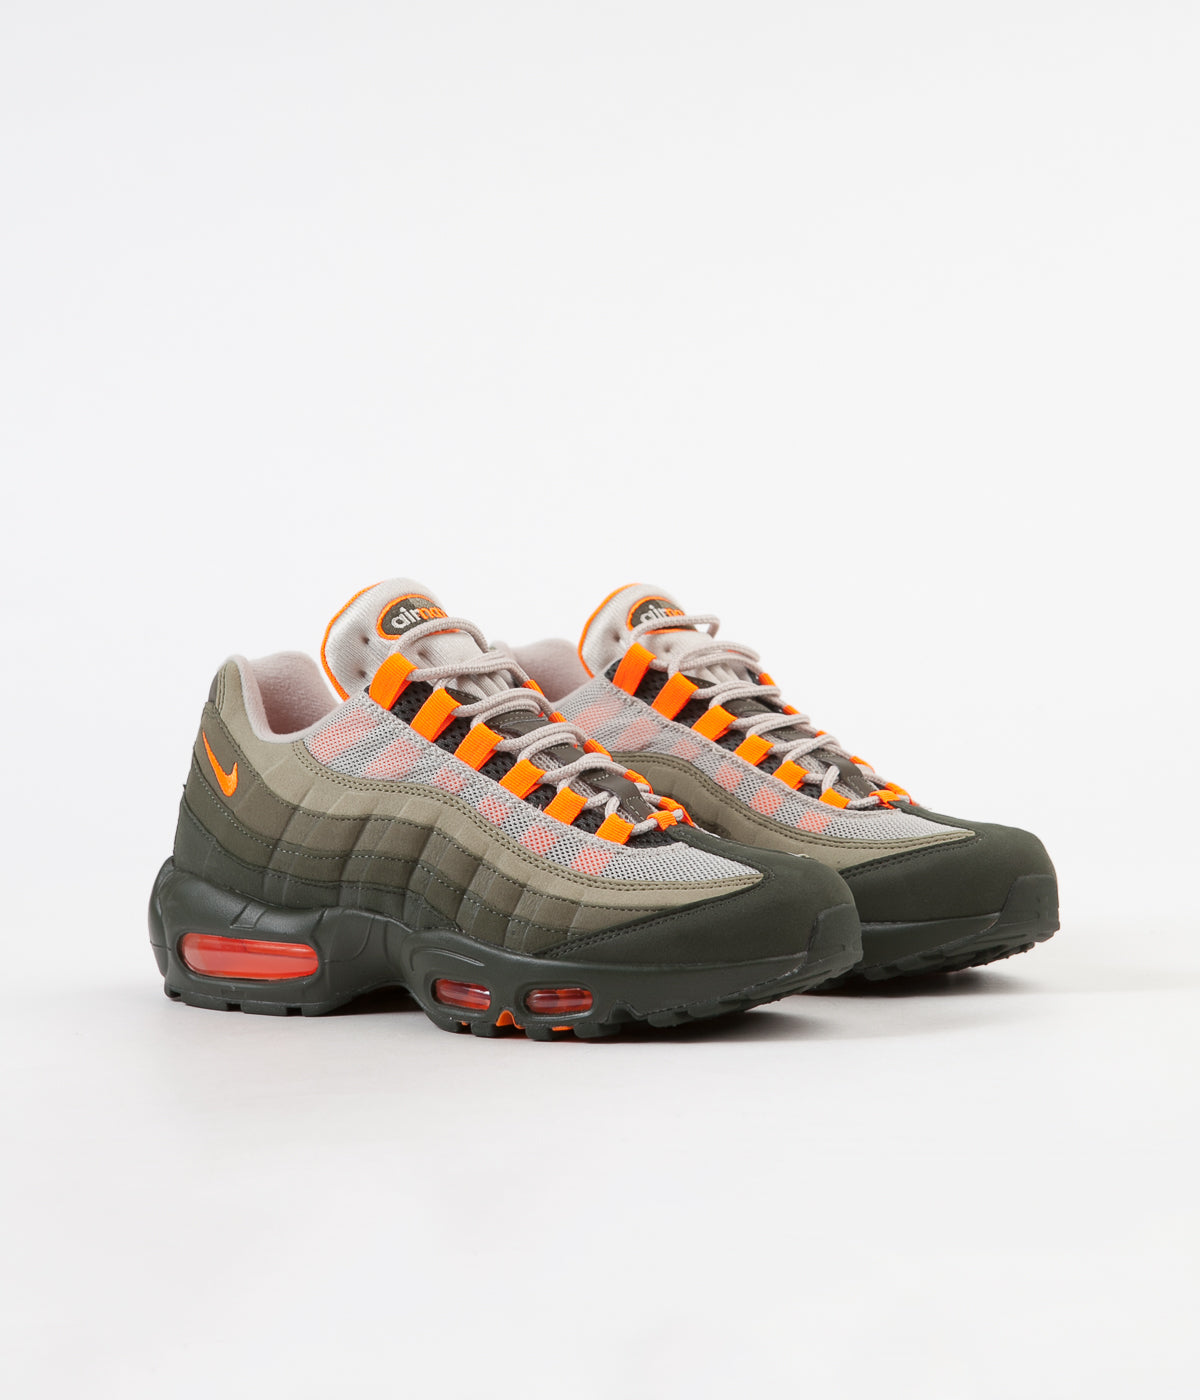 5b287b69b83 Nike Air Max 95 OG Shoes - String Total Orange - Neutral Olive ...